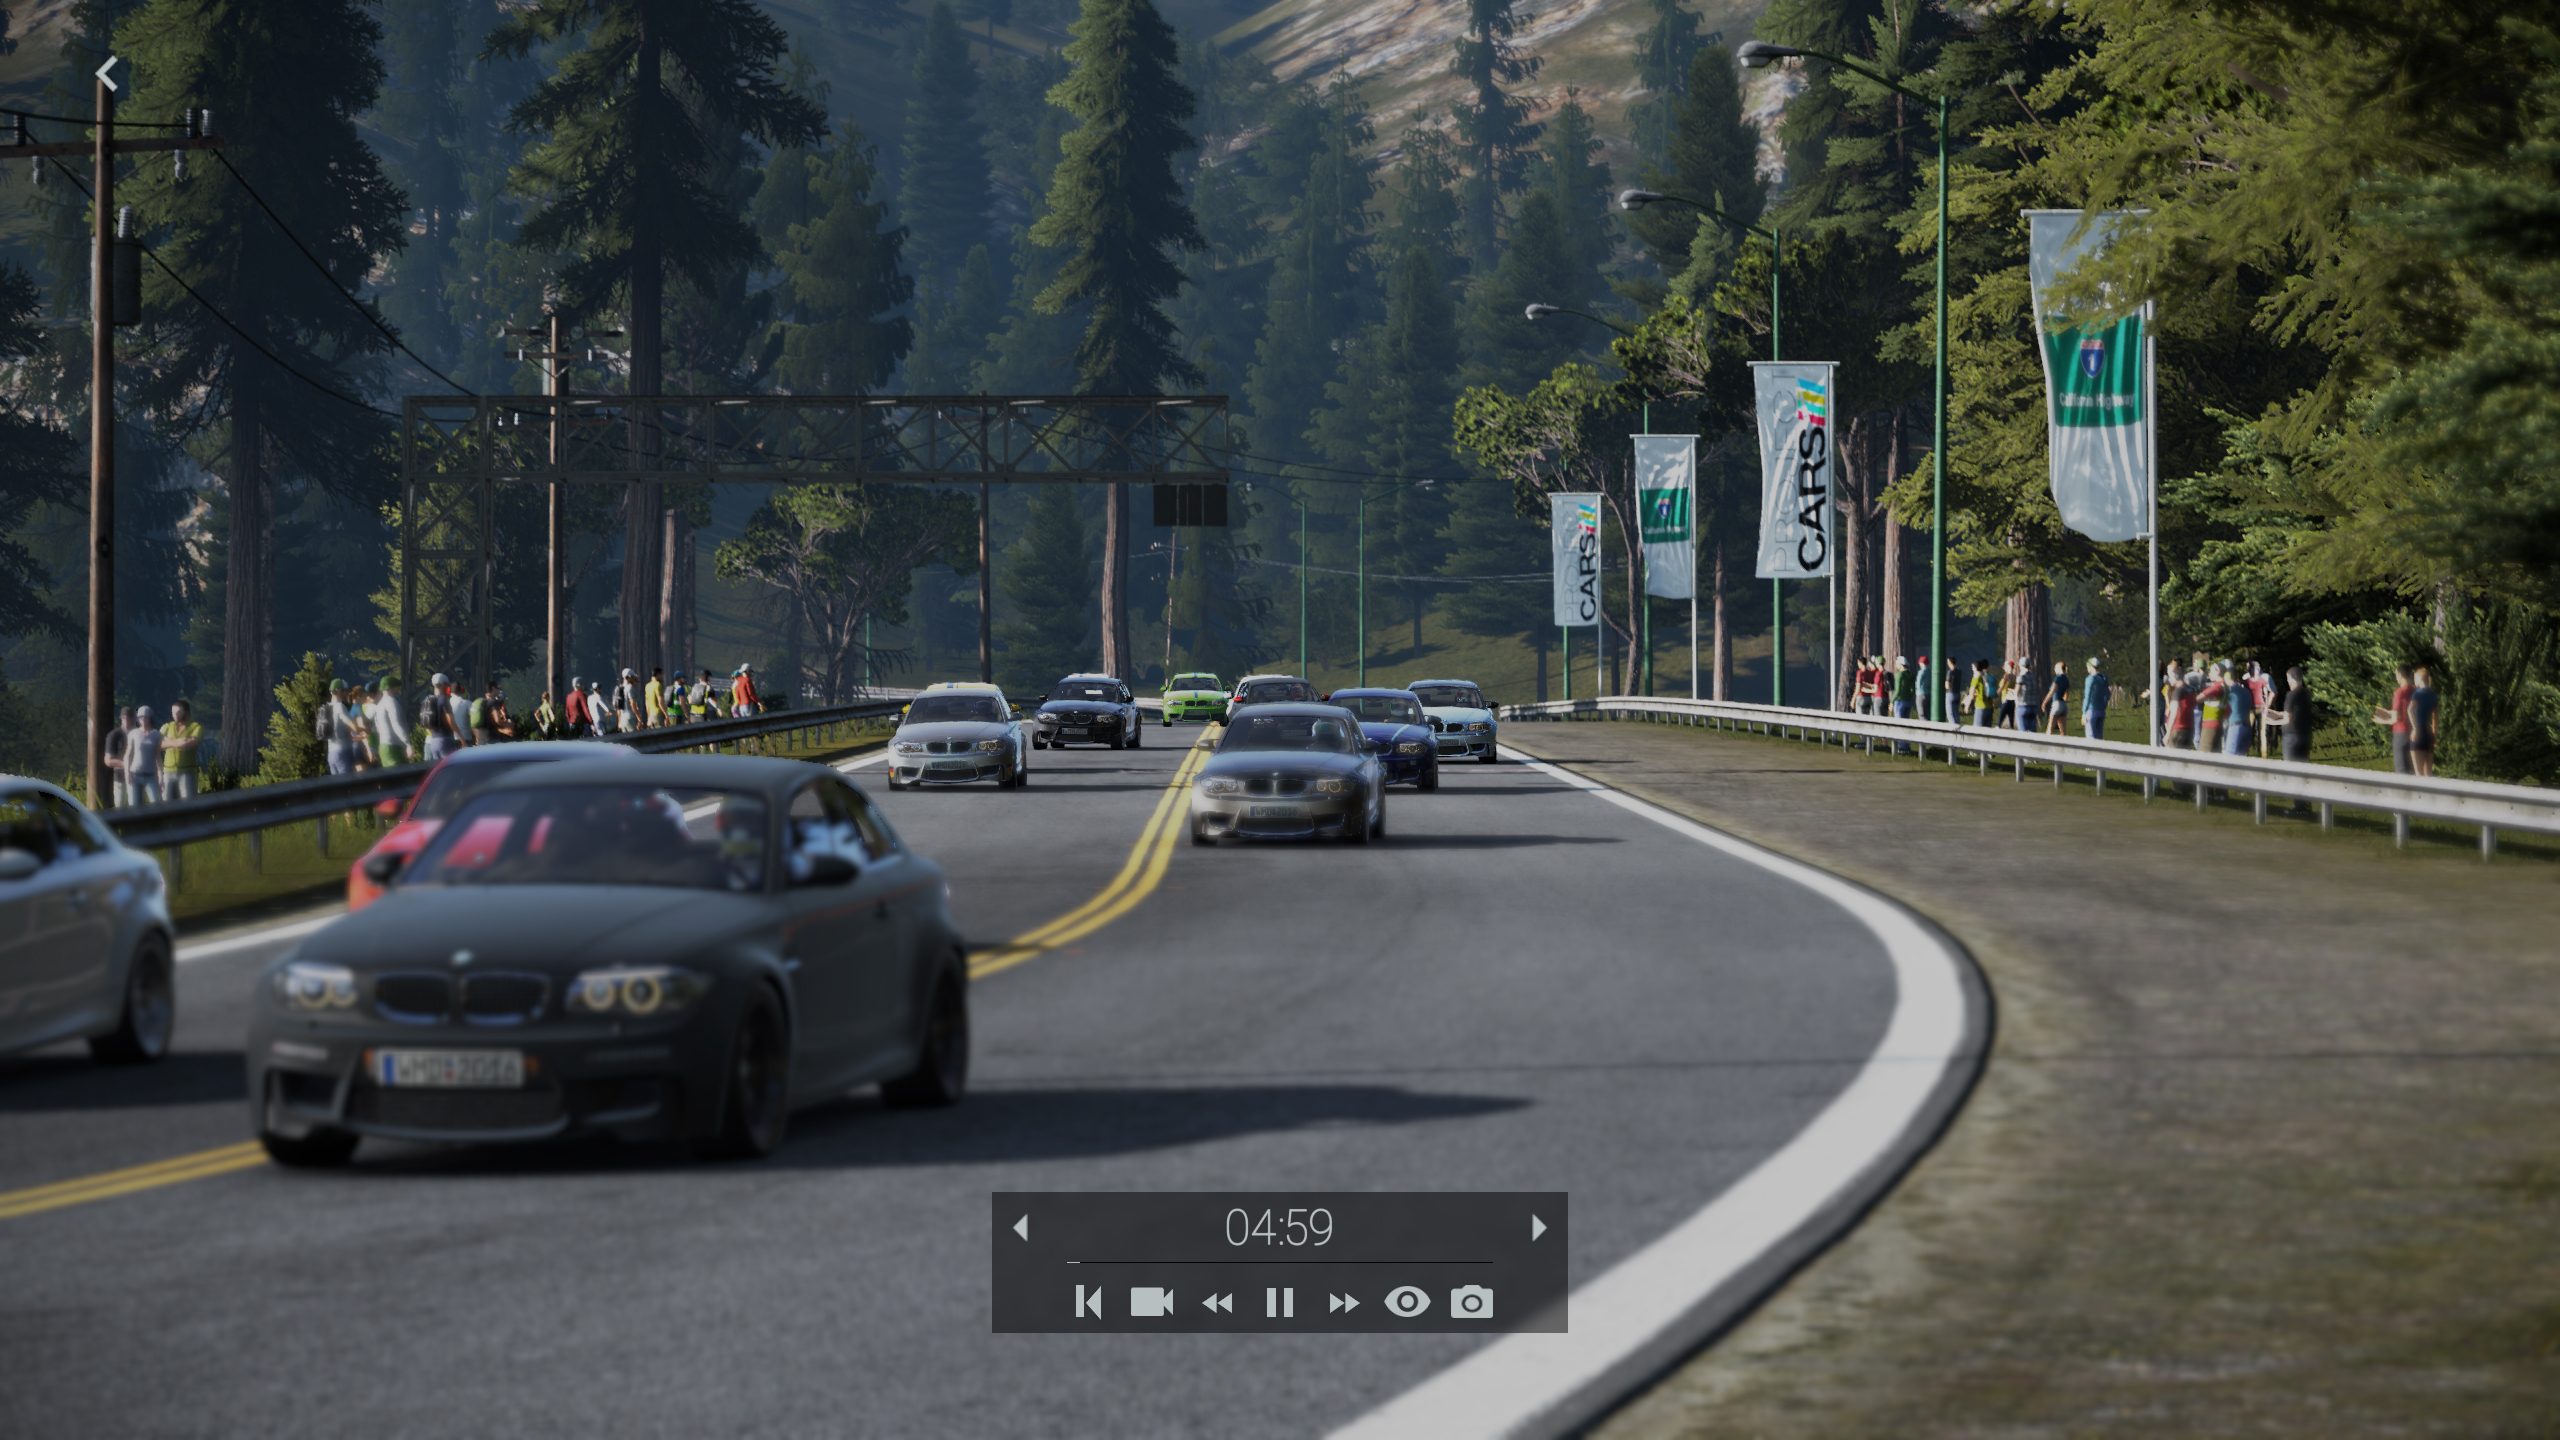 Project CARS 2 PC and VR performance evaluation red vs green